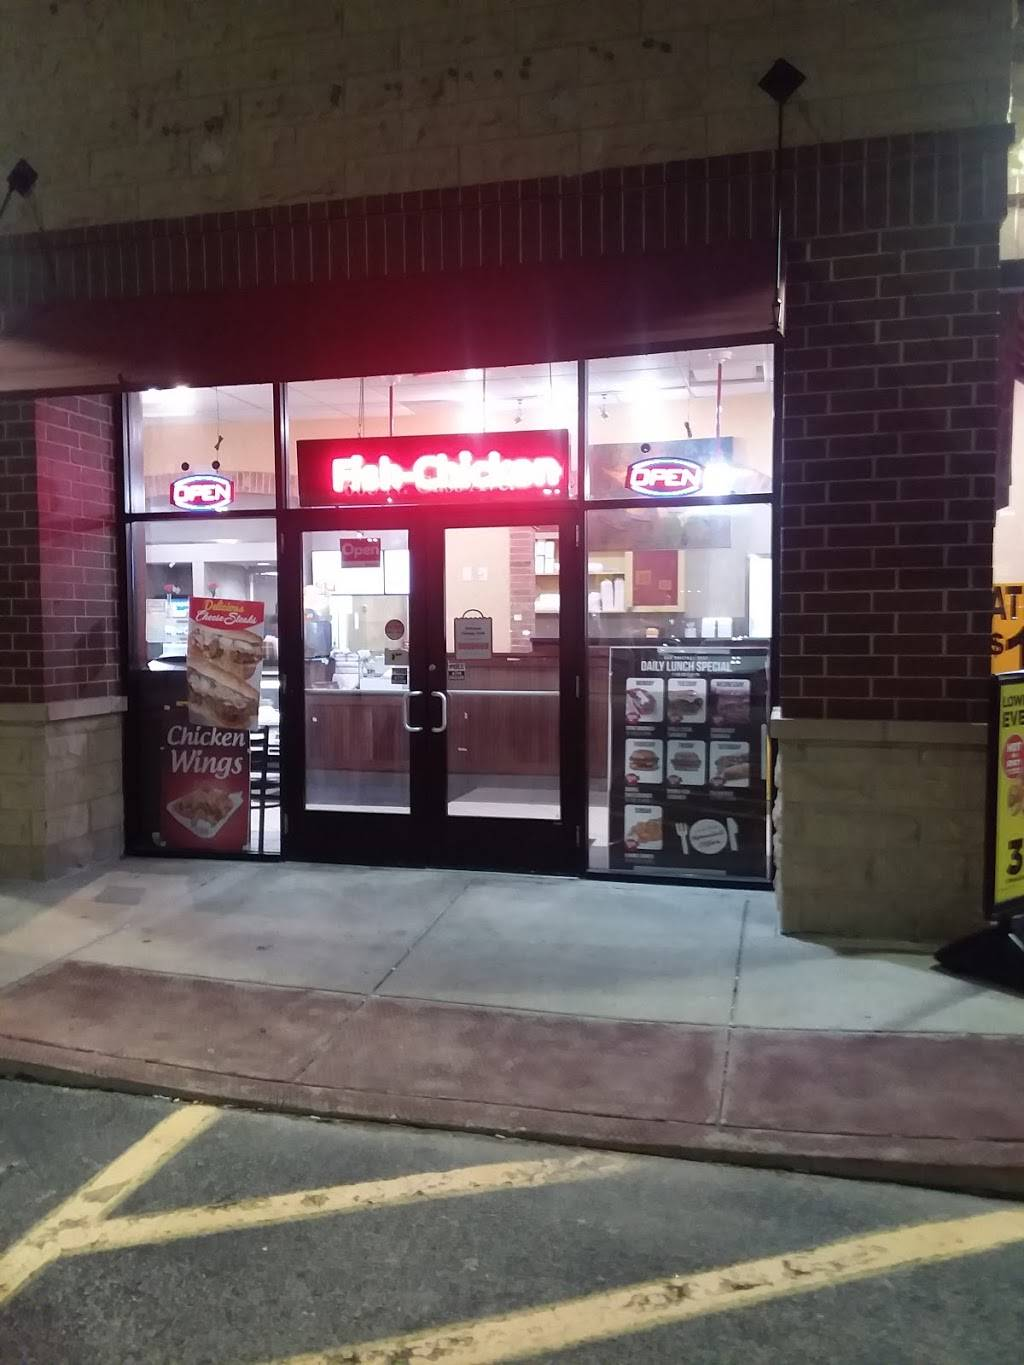 Firehouse Chicago Style | restaurant | 605 N Cass Ave, Westmont, IL 60559, USA | 7088351873 OR +1 708-835-1873